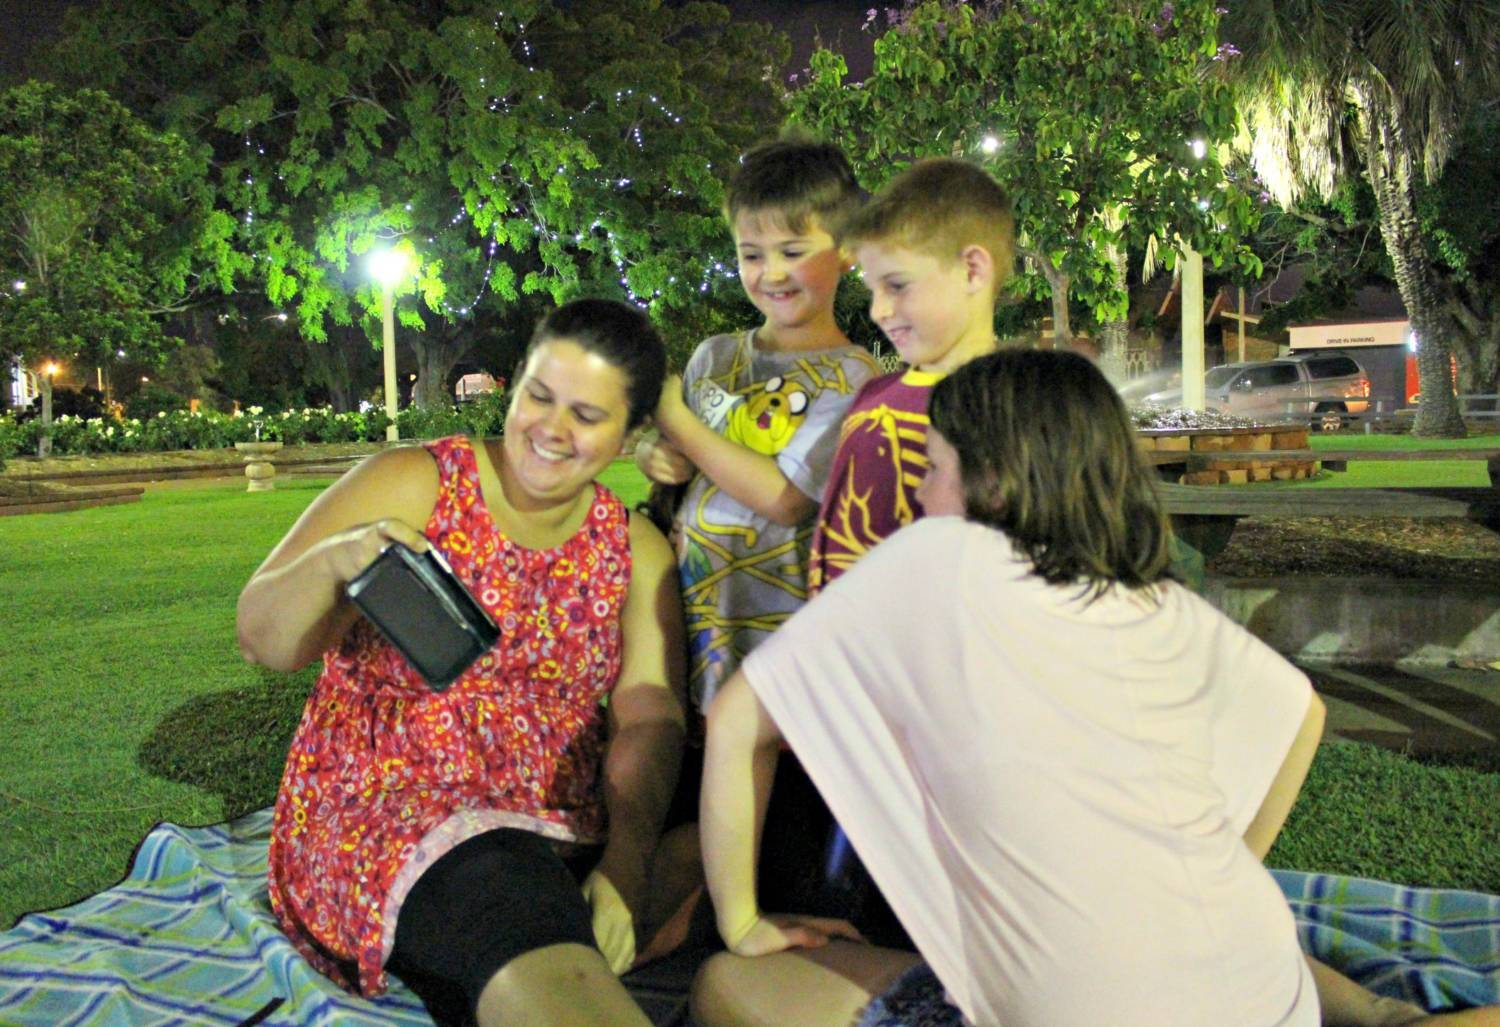 twilight picnic spots in bundaberg